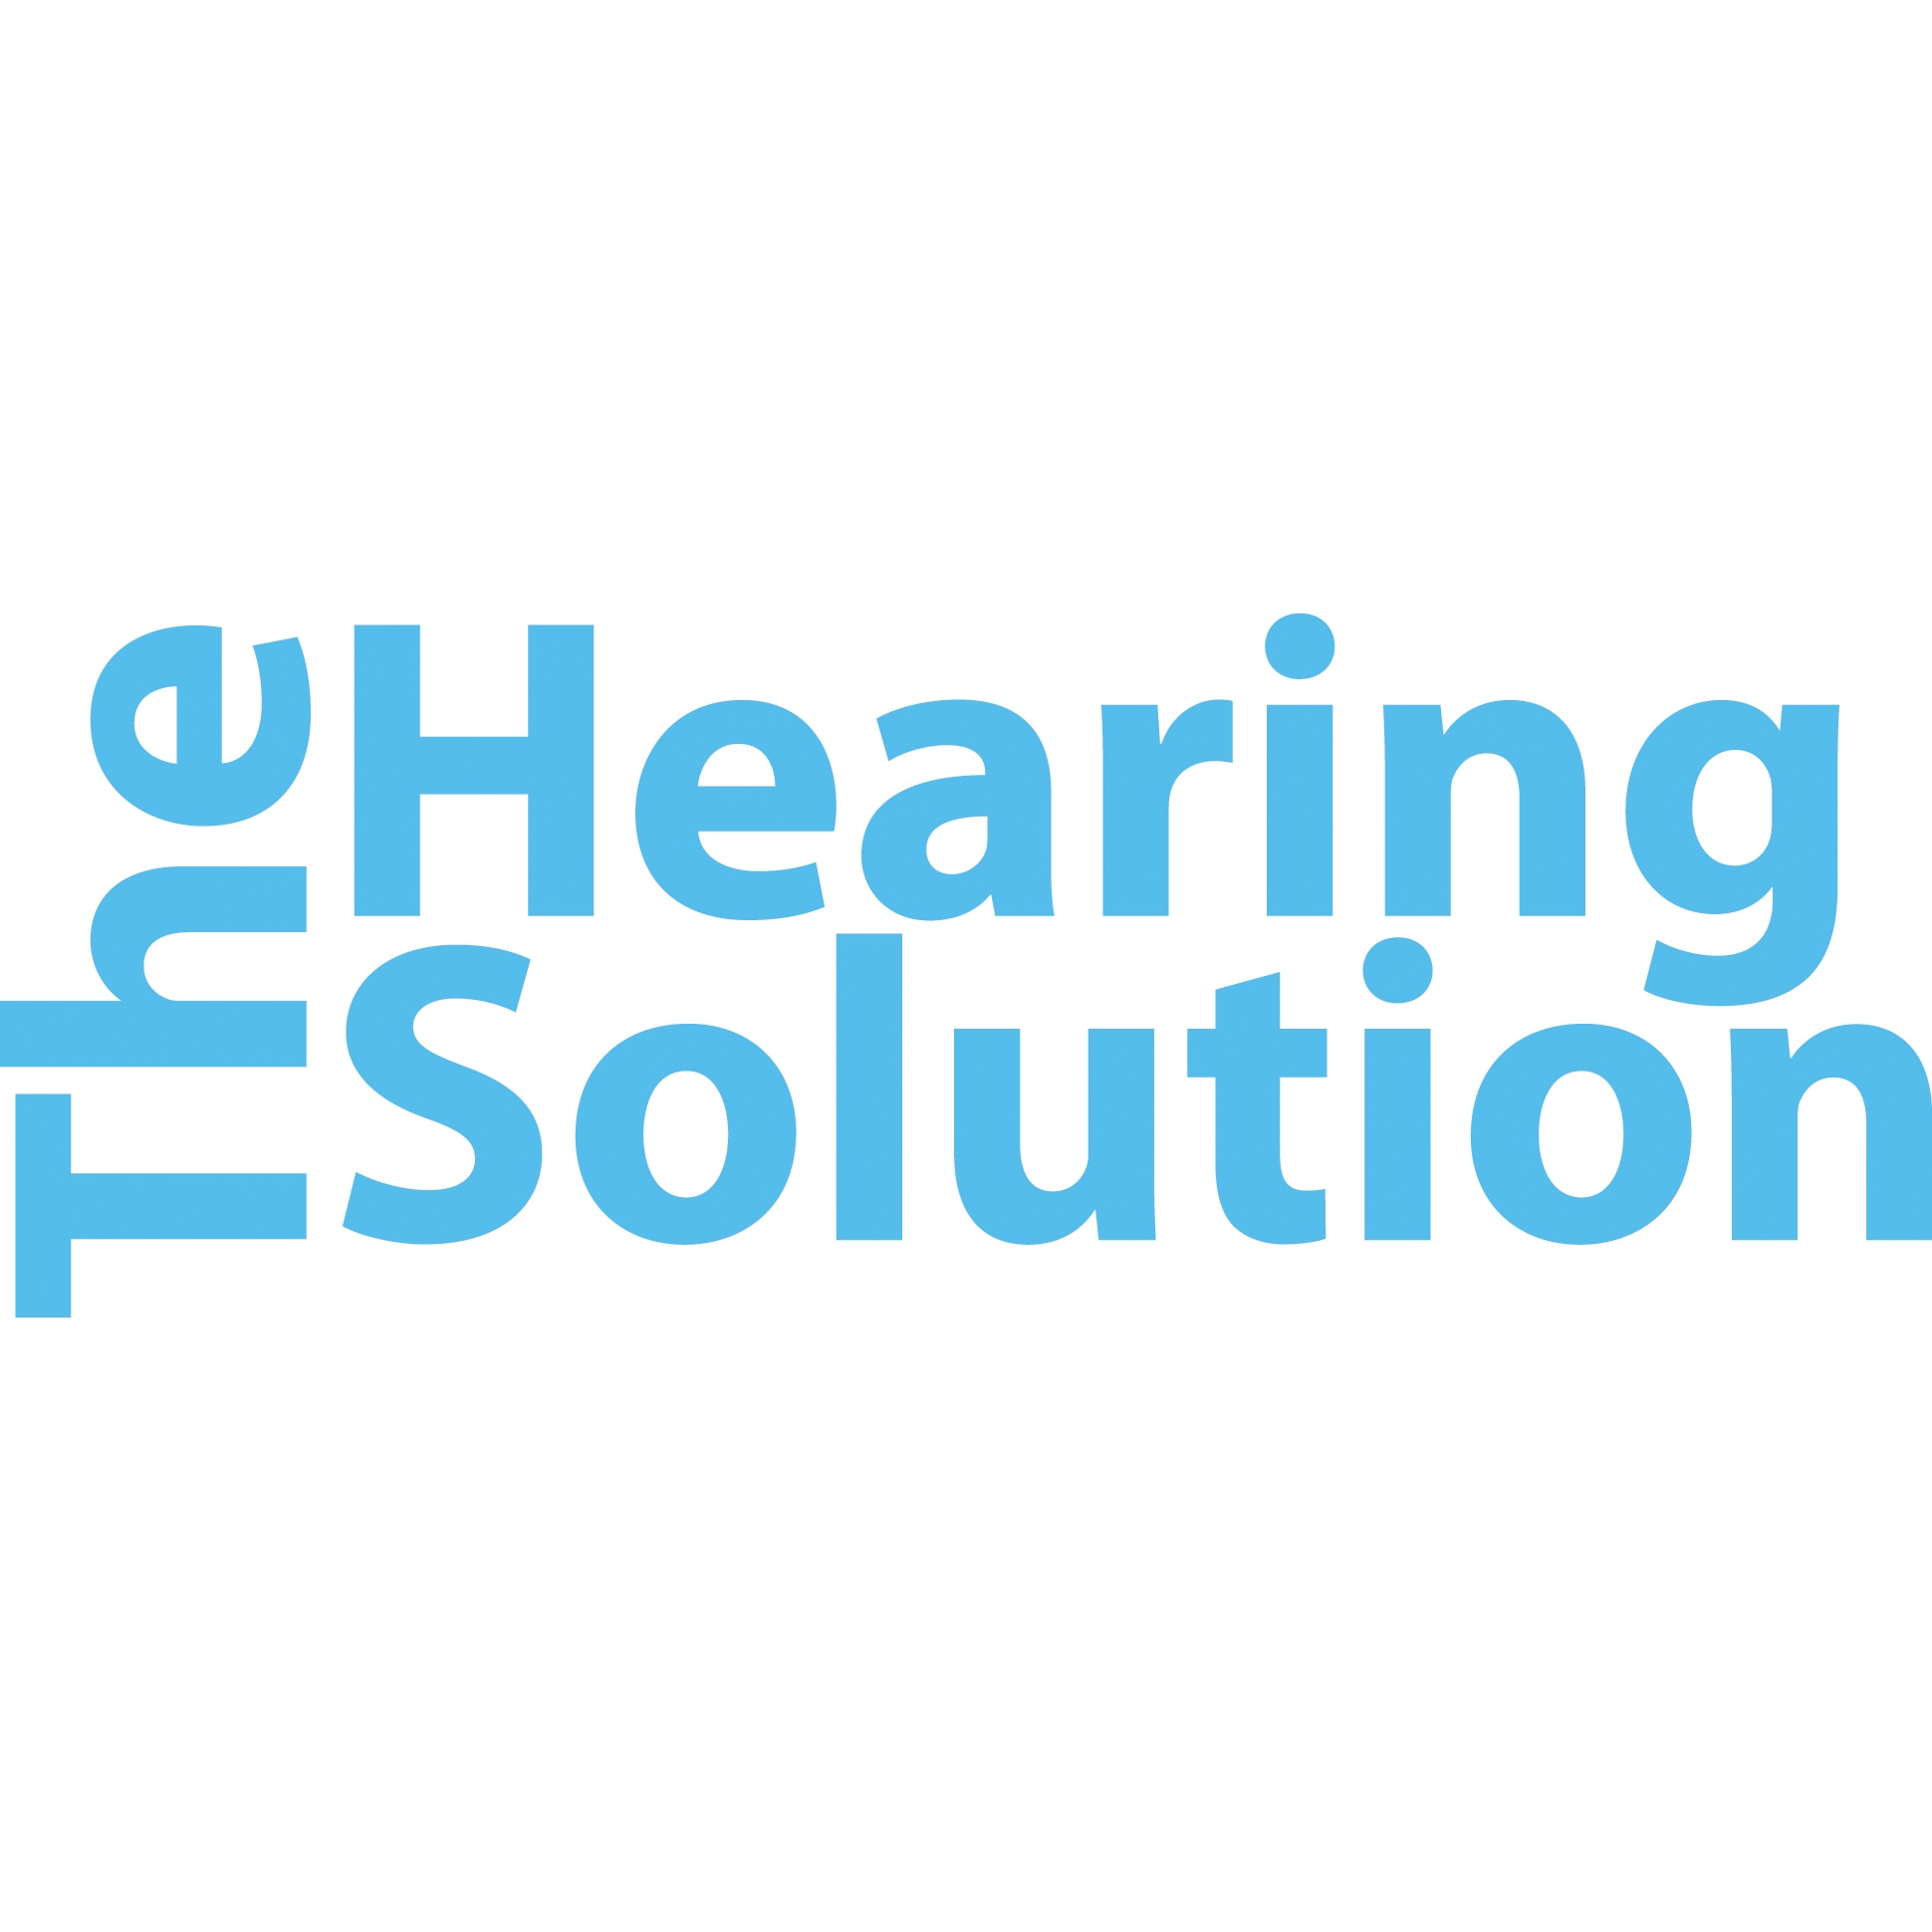 The Hearing Solution Inc logo